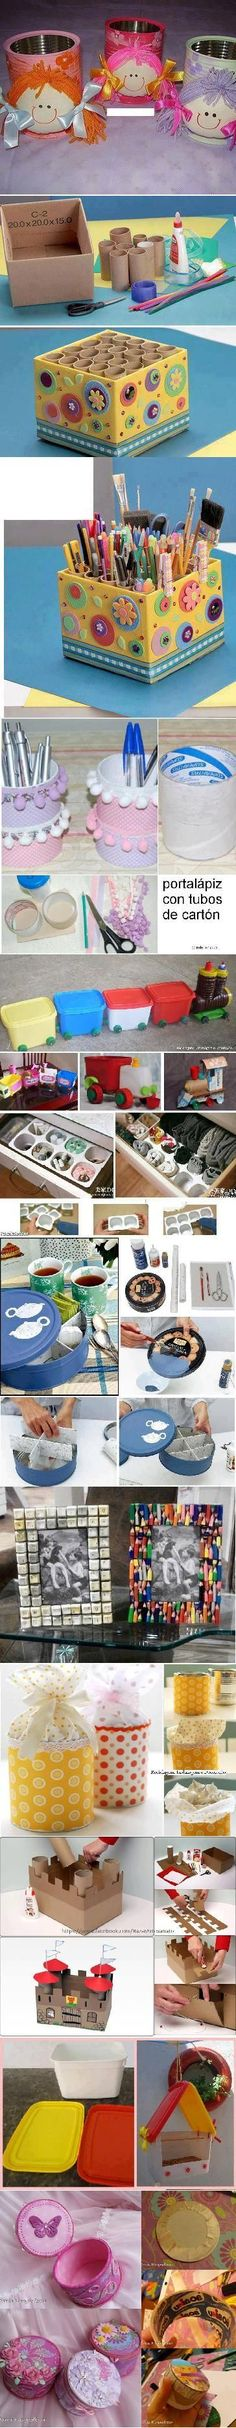 Looking for a fun and easy diy craft project for little or no money? We have the easiest craft ideas for you to try with things that are just sitting around your house. Turn them into a fun craft project with these diy image tutorials. Kids Crafts, Easy Diy Crafts, Recycled Crafts, Projects For Kids, Diy For Kids, Craft Projects, Arts And Crafts, Paper Crafts, Craft Ideas